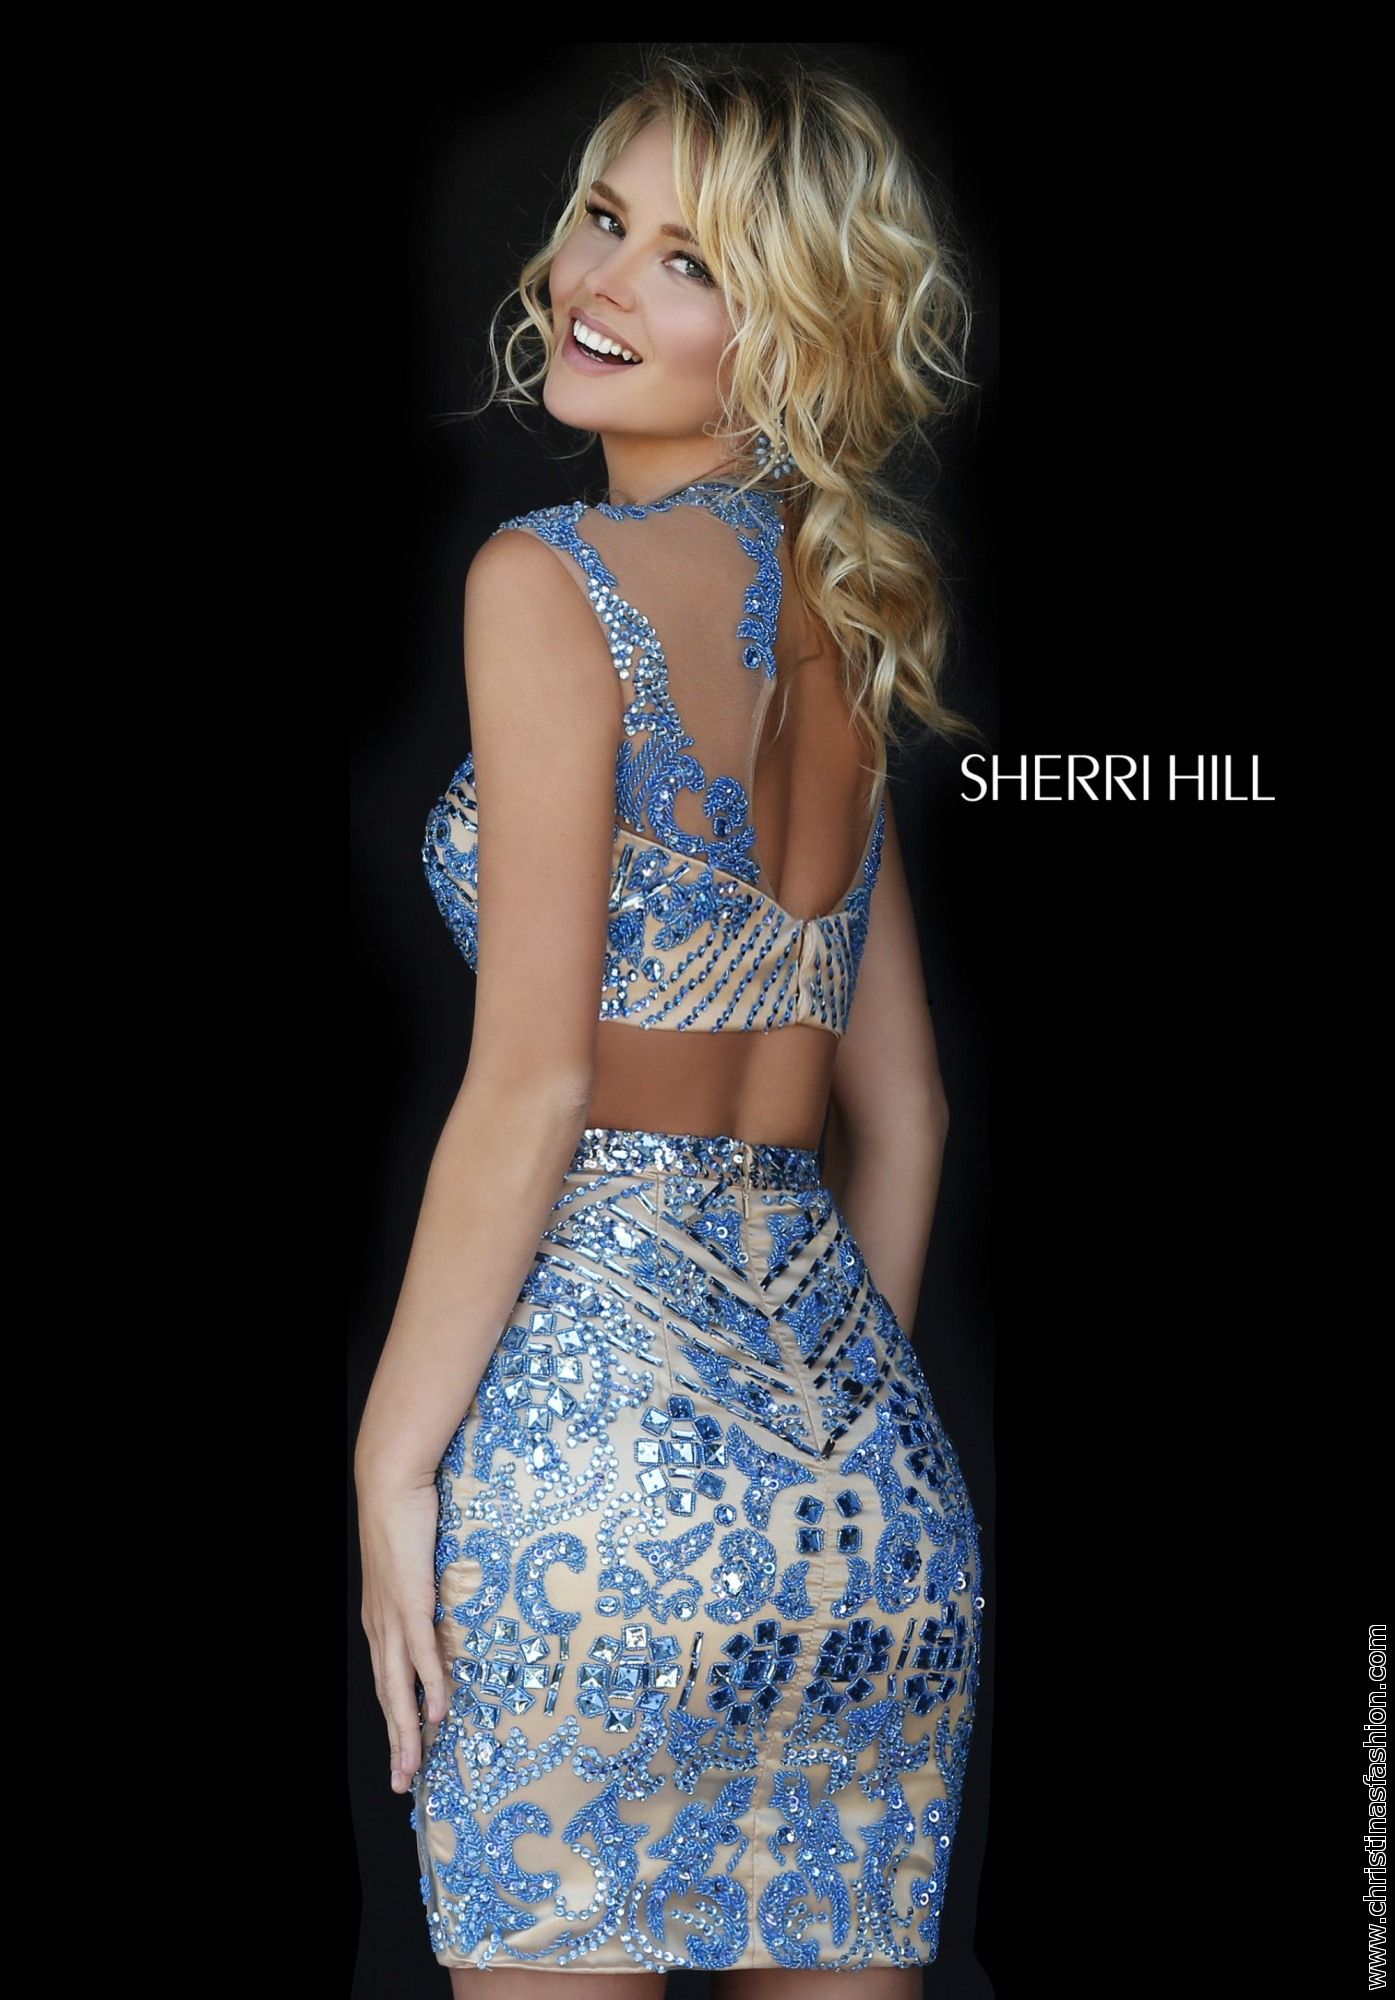 Show off those curves in this sexy and hot sherri hill piece all